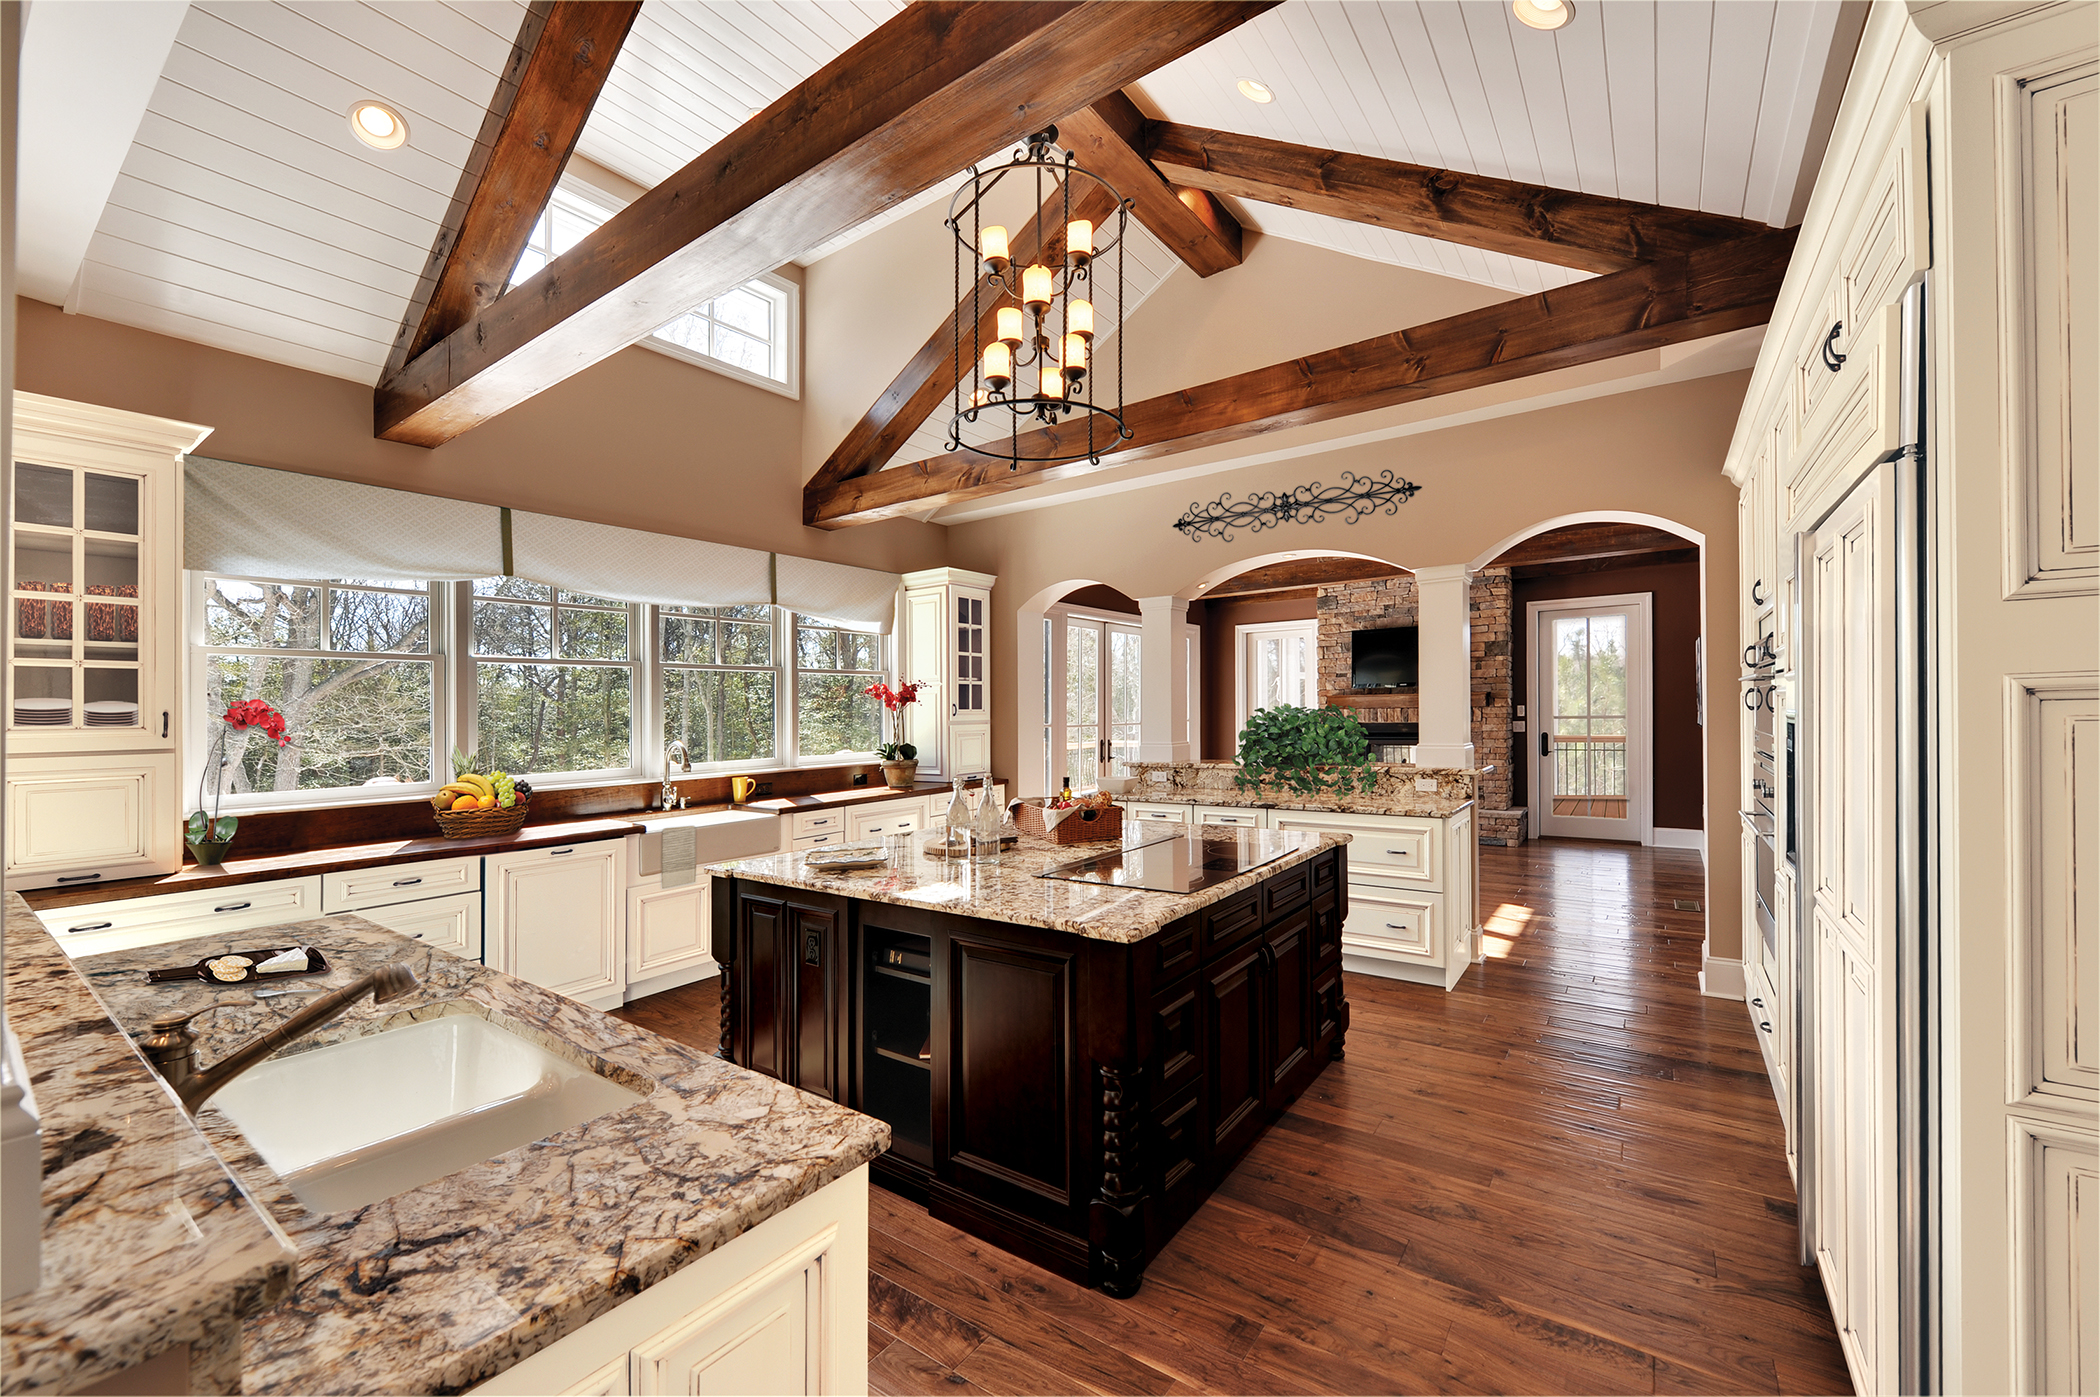 Simple Kitchen Style what's your kitchen style? | wellborn cabinet blog